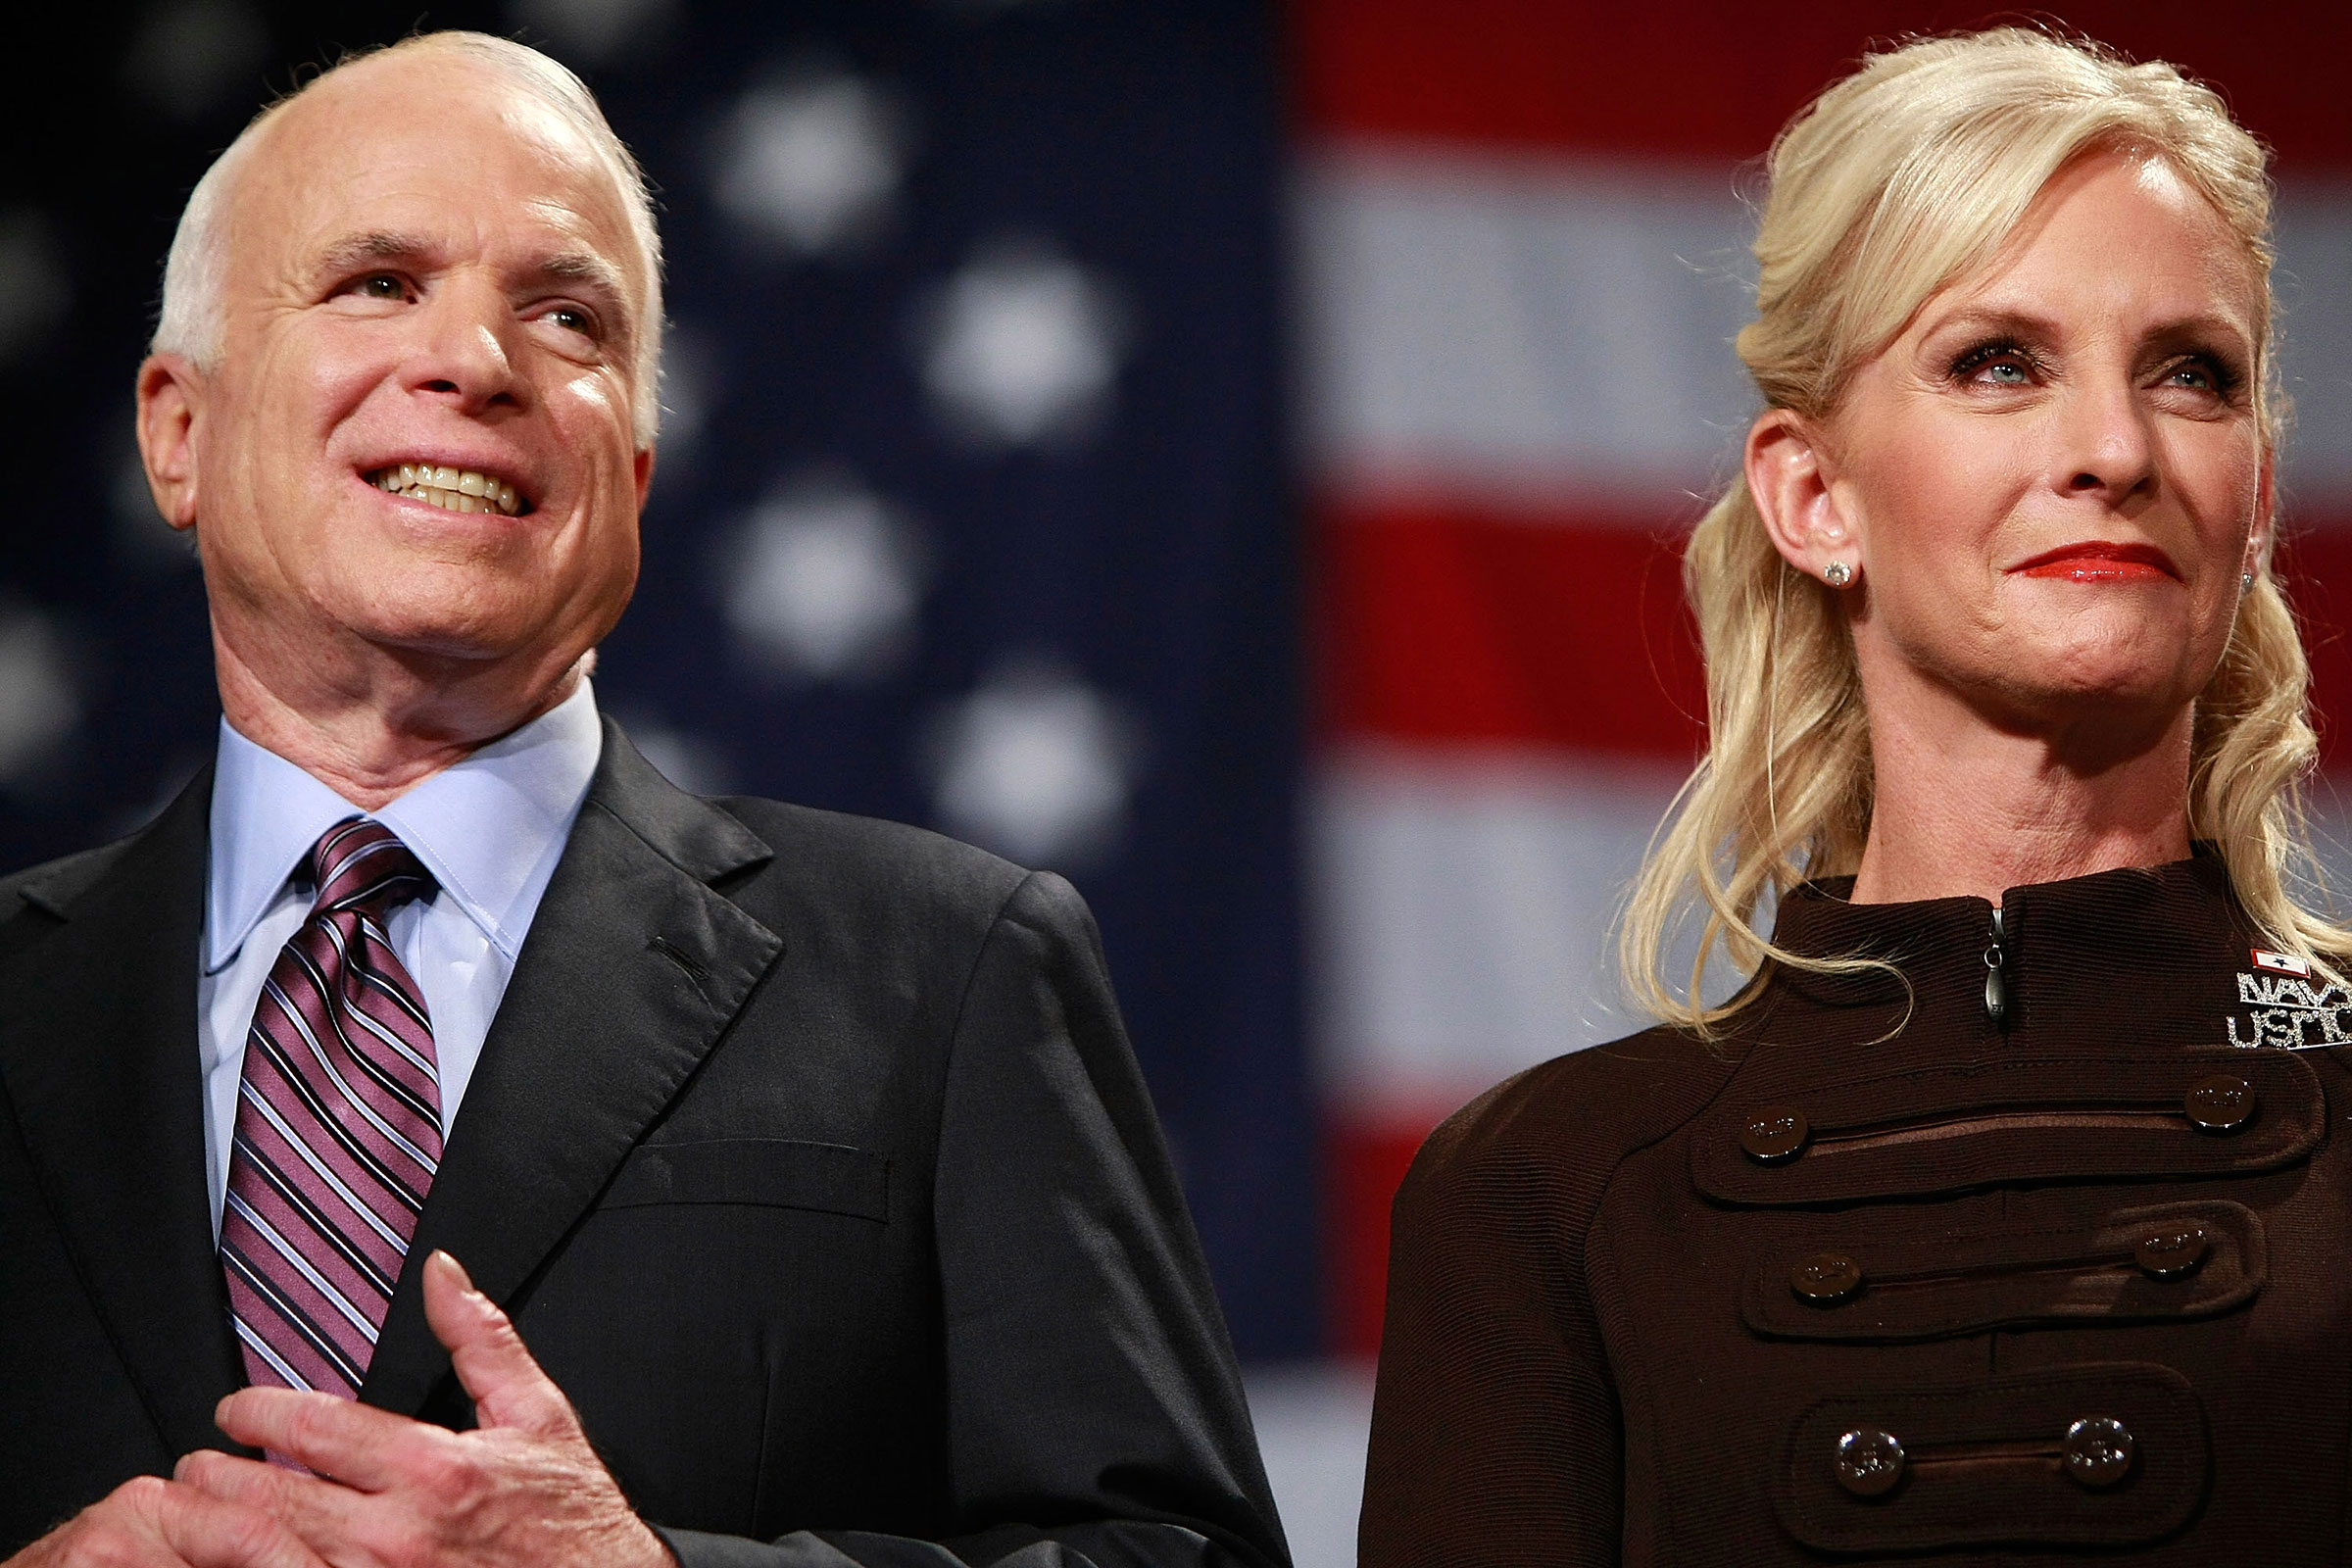 Then Republican presidential nominee Sen. John McCain and his wife Cindy McCain attend a rally in Thorndale, Pa. on Oc.t 16, 2008.